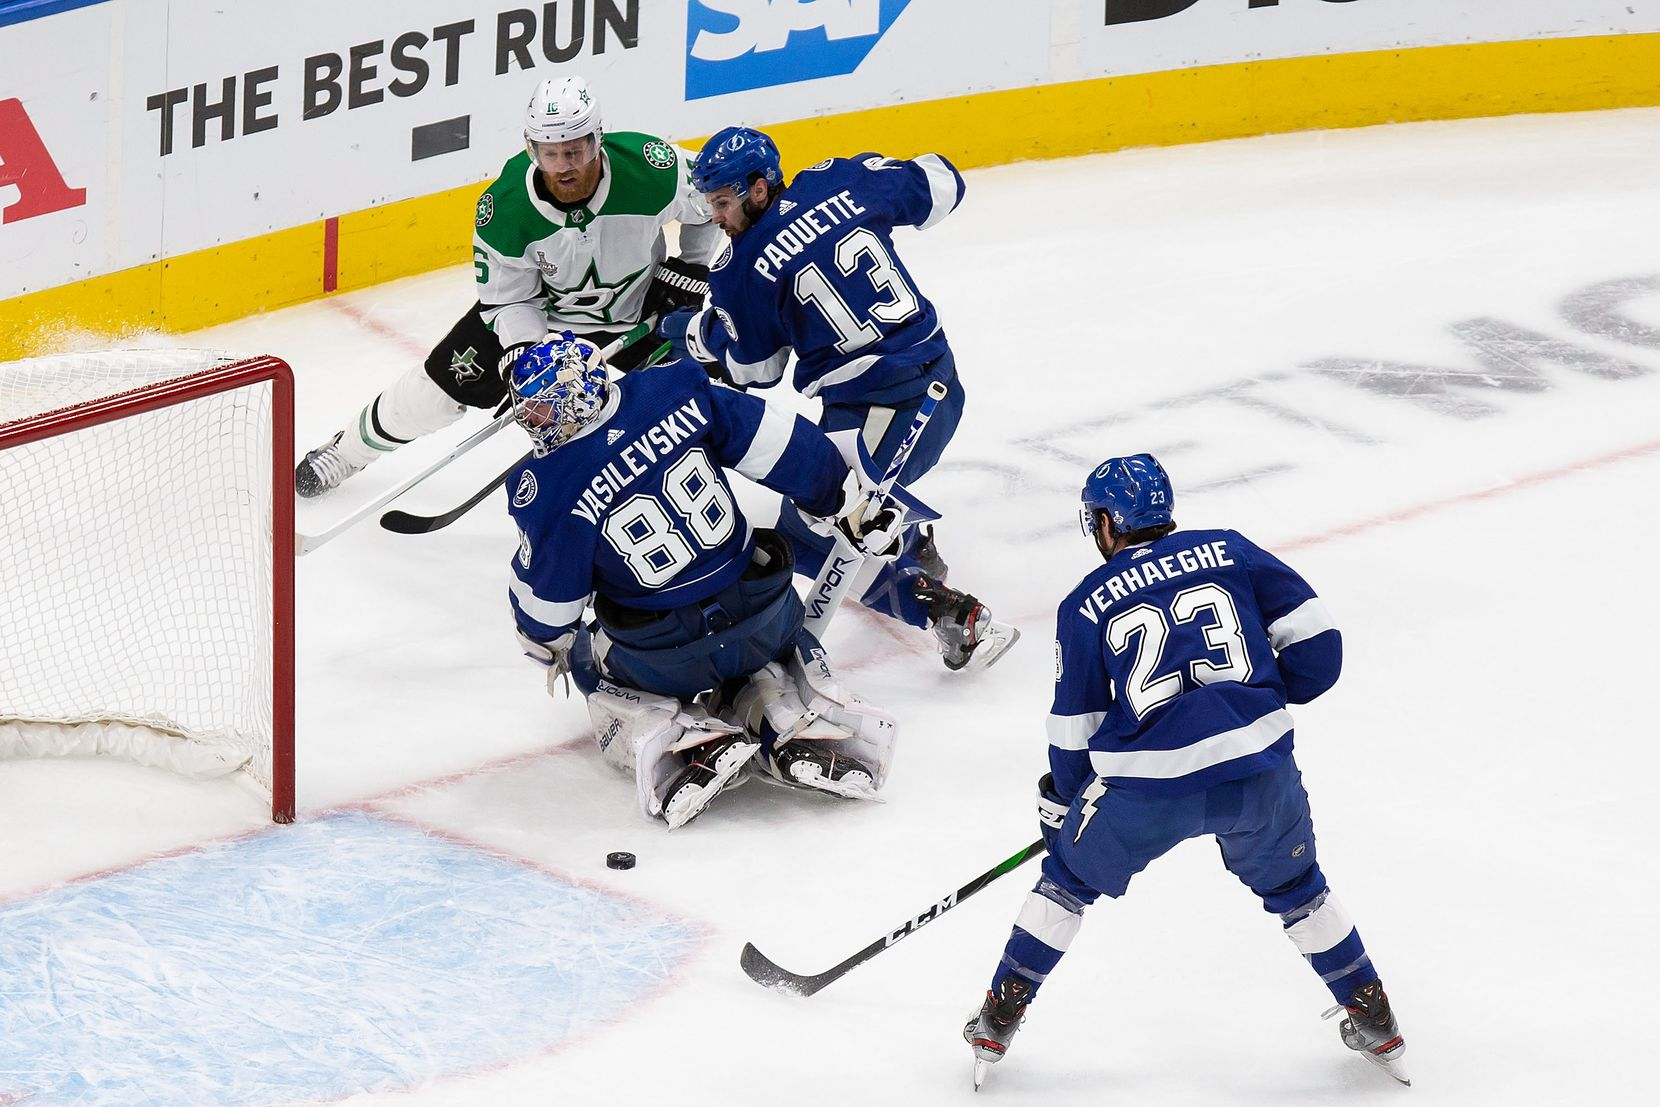 Joe Pavelski (16) of the Dallas Stars attacks the net as goaltender Andrei Vasilevskiy (88) and Cedric Paquette (13) of the Tampa Bay Lightning defend during Game Two of the Stanley Cup Final at Rogers Place in Edmonton, Alberta, Canada on Monday, September 21, 2020. (Codie McLachlan/Special Contributor)